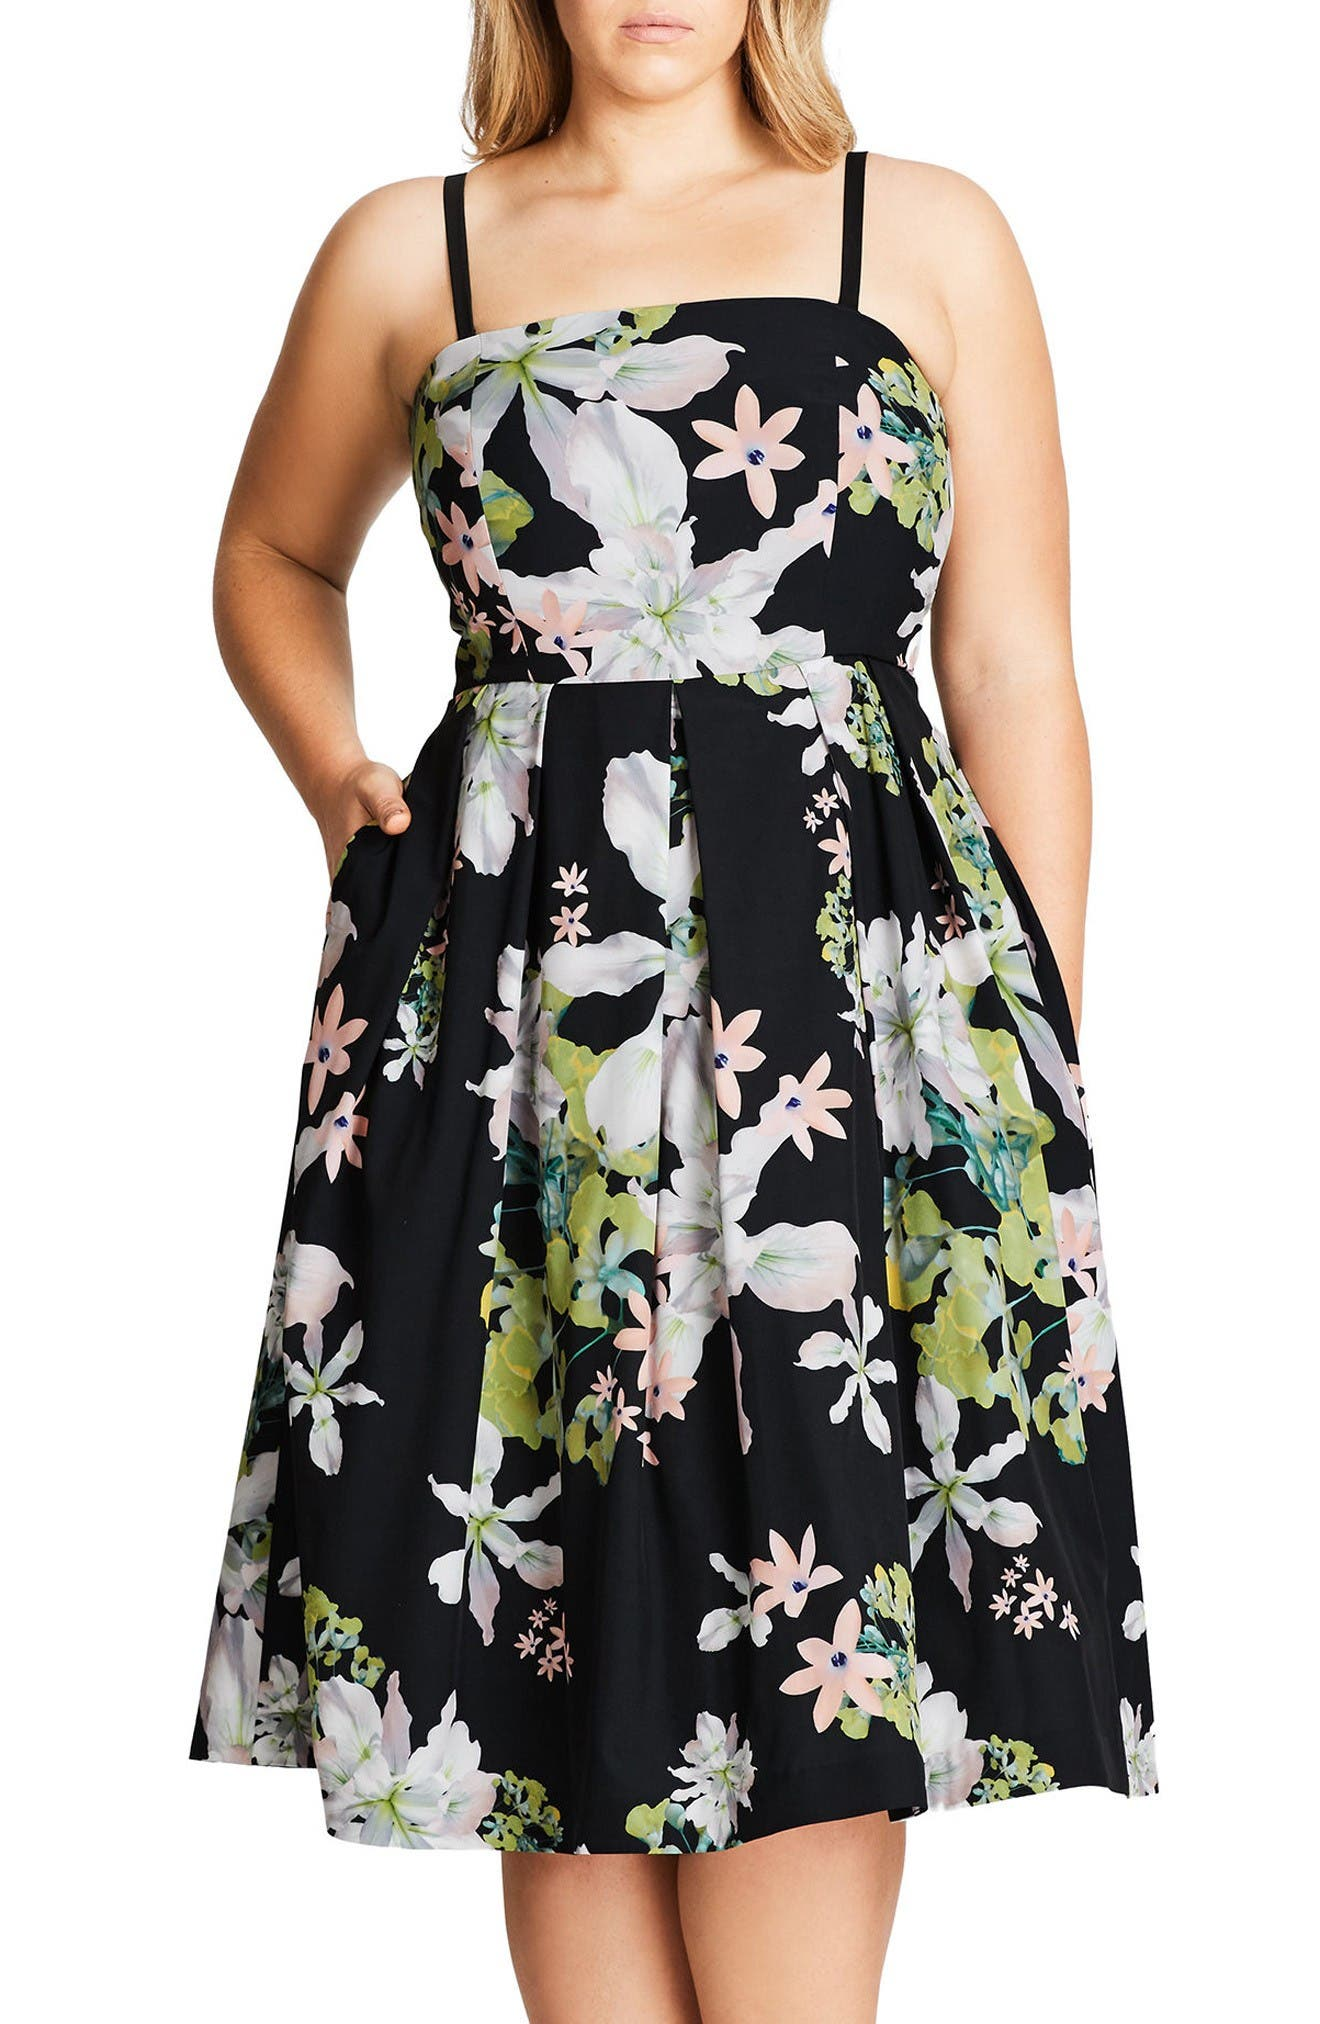 Alternate Image 1 Selected - City Chic Emerald Spring Convertible Sundress (Plus Size)